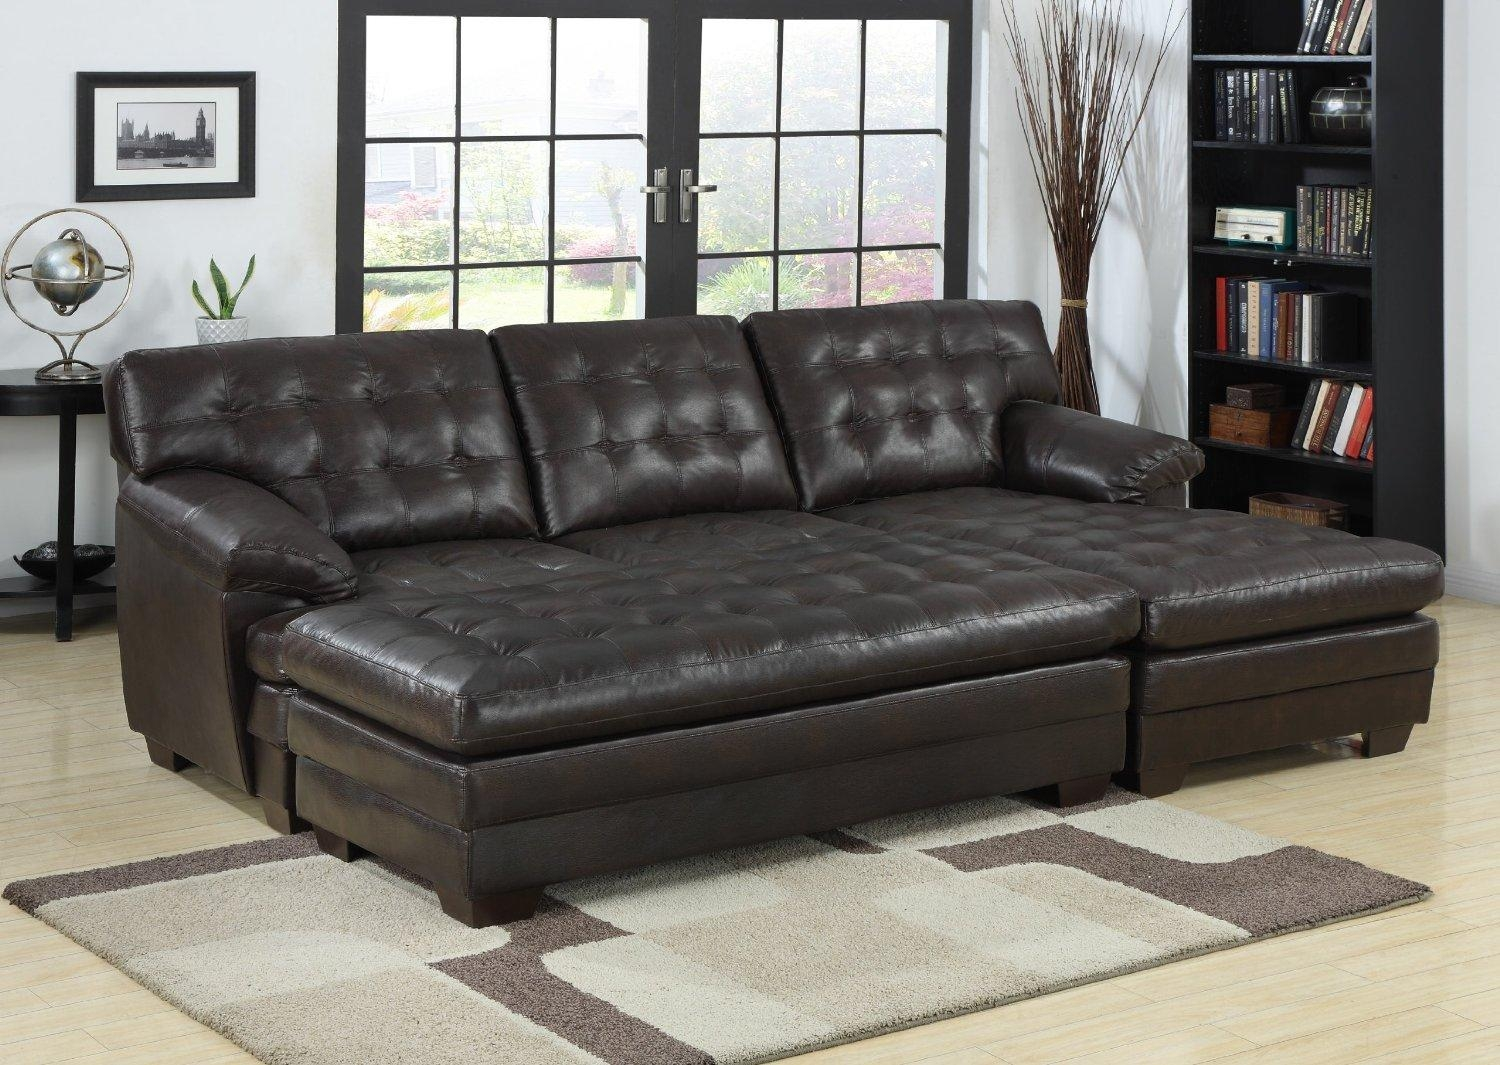 Bedroom Ideas : Chaise Lounge Sofa Best Chaise Lounge Sofa 53 For In Sofas And Chaises Lounge Sets (Image 3 of 20)